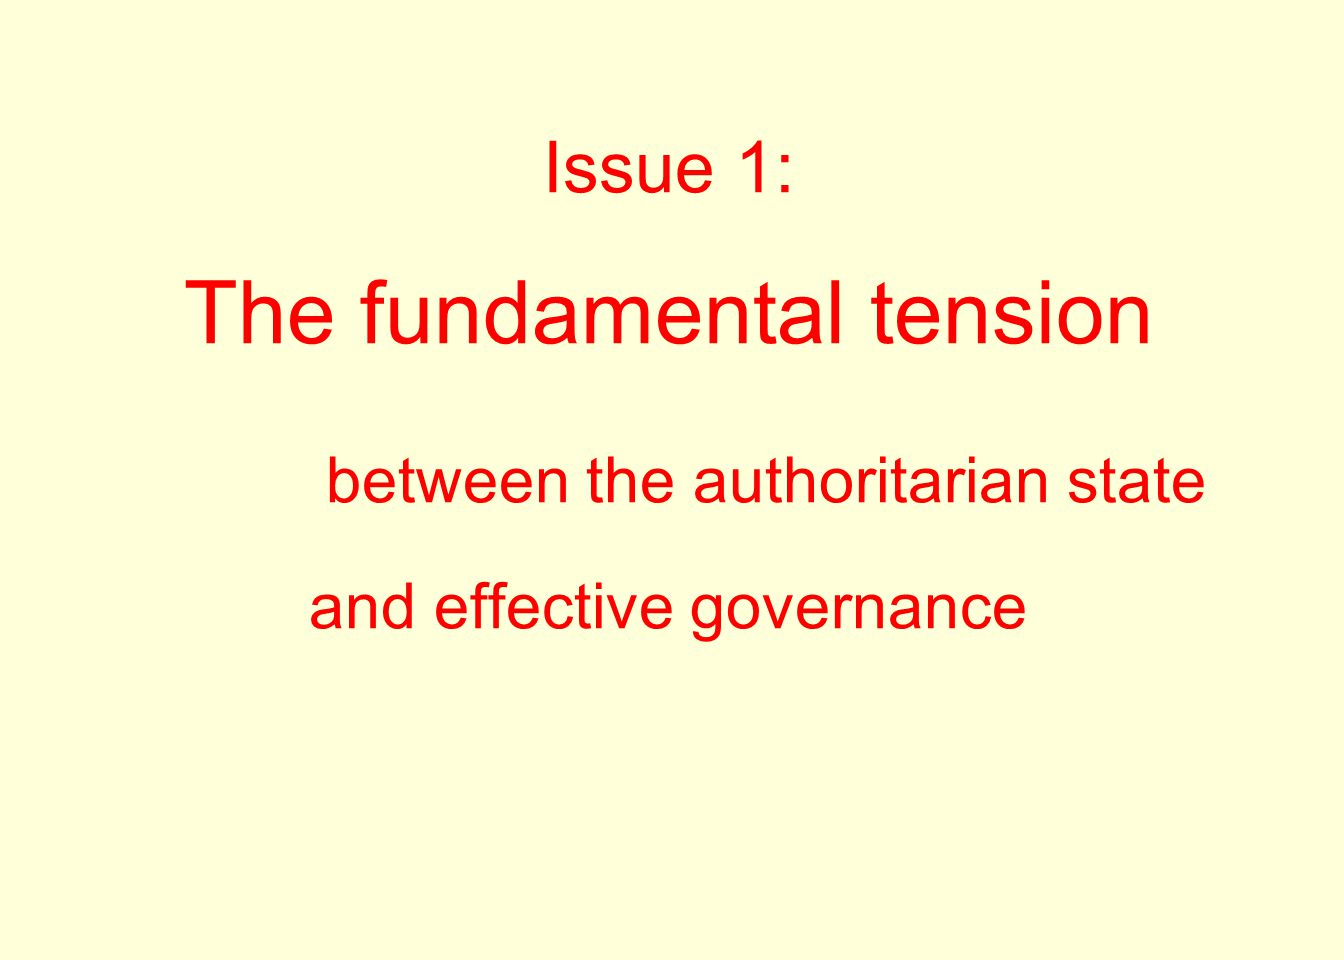 Issue 1: The fundamental tension between the authoritarian state and effective governance